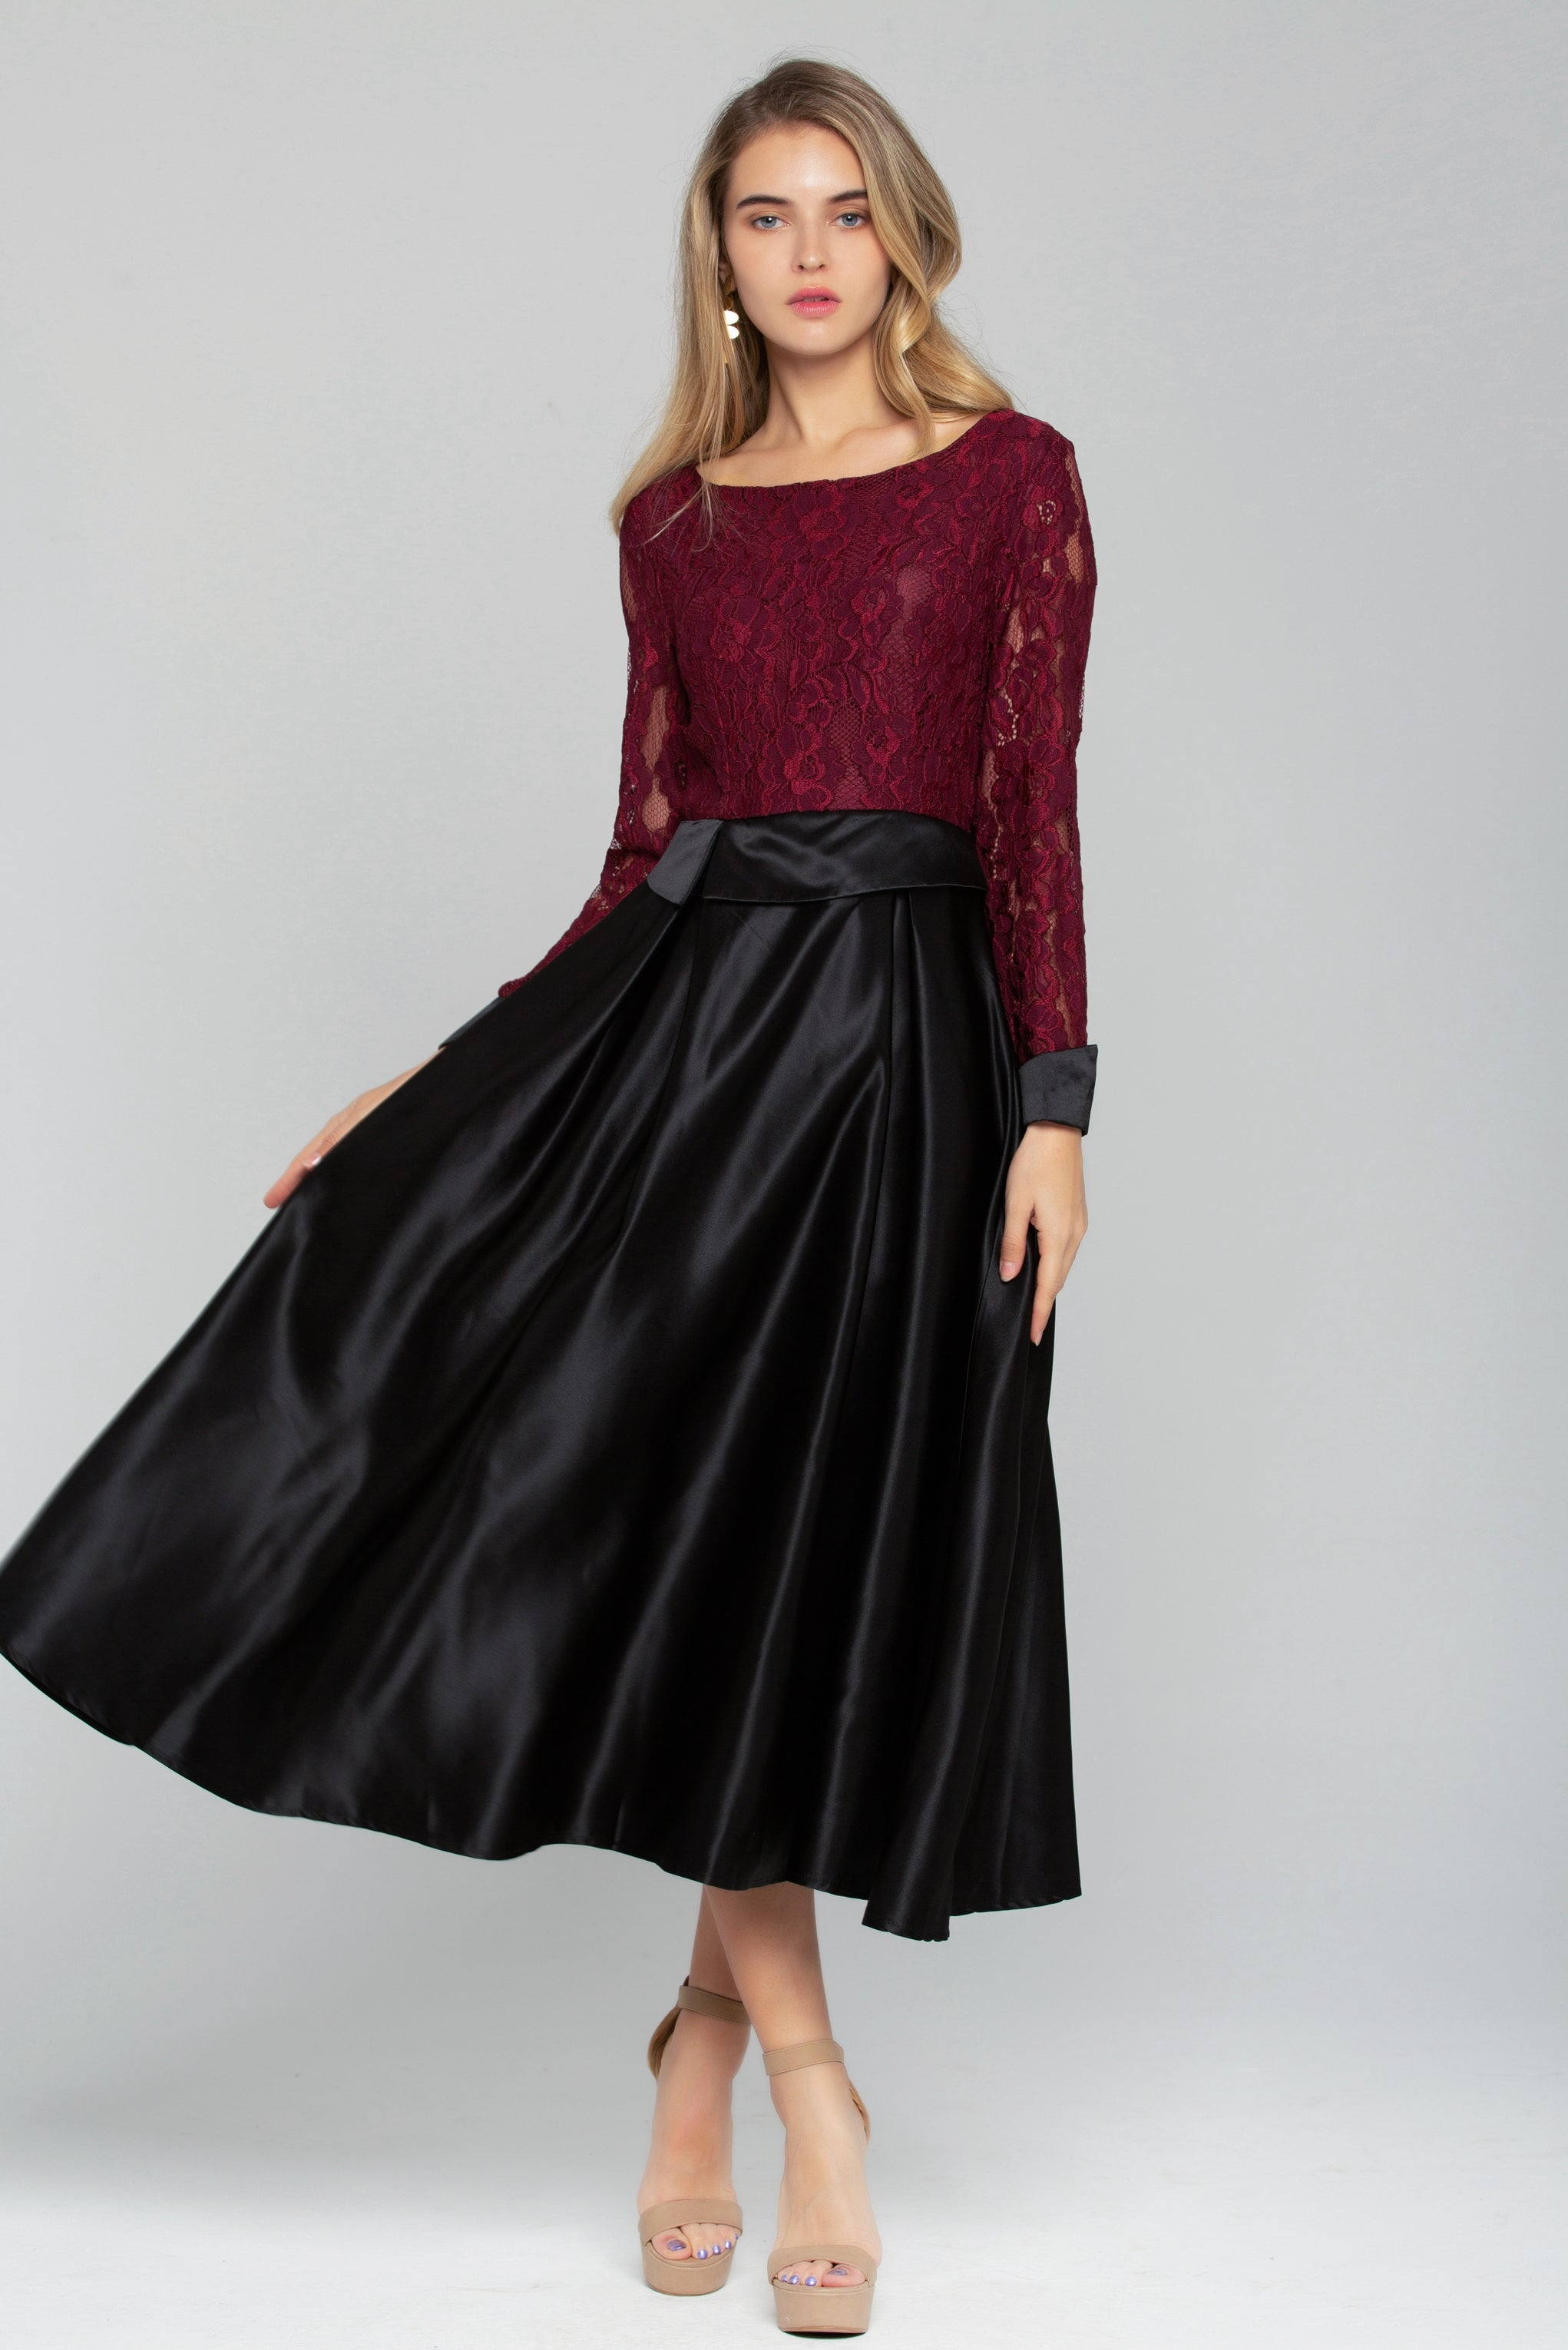 97dc183212063 Maroon Lace Top with Black Maxi Skirt Dress – OwnTheLooks